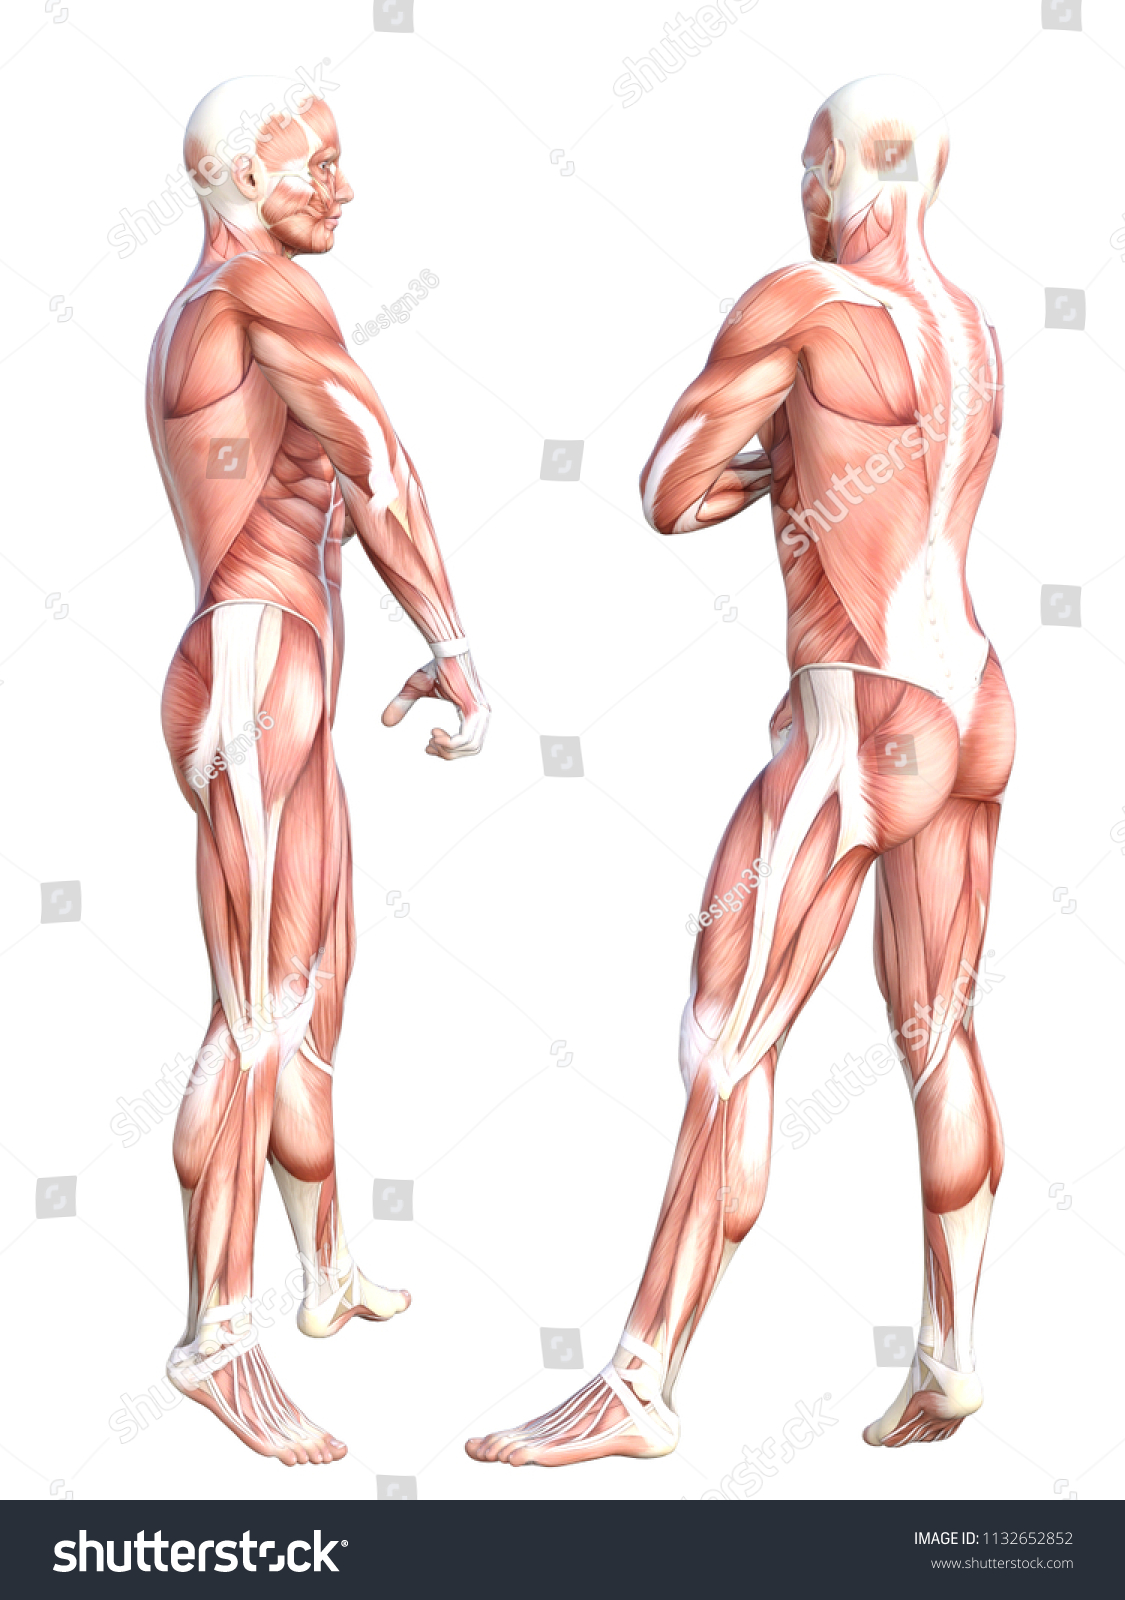 Conceptual Anatomy Healthy Skinless Human Body Muscle System Set